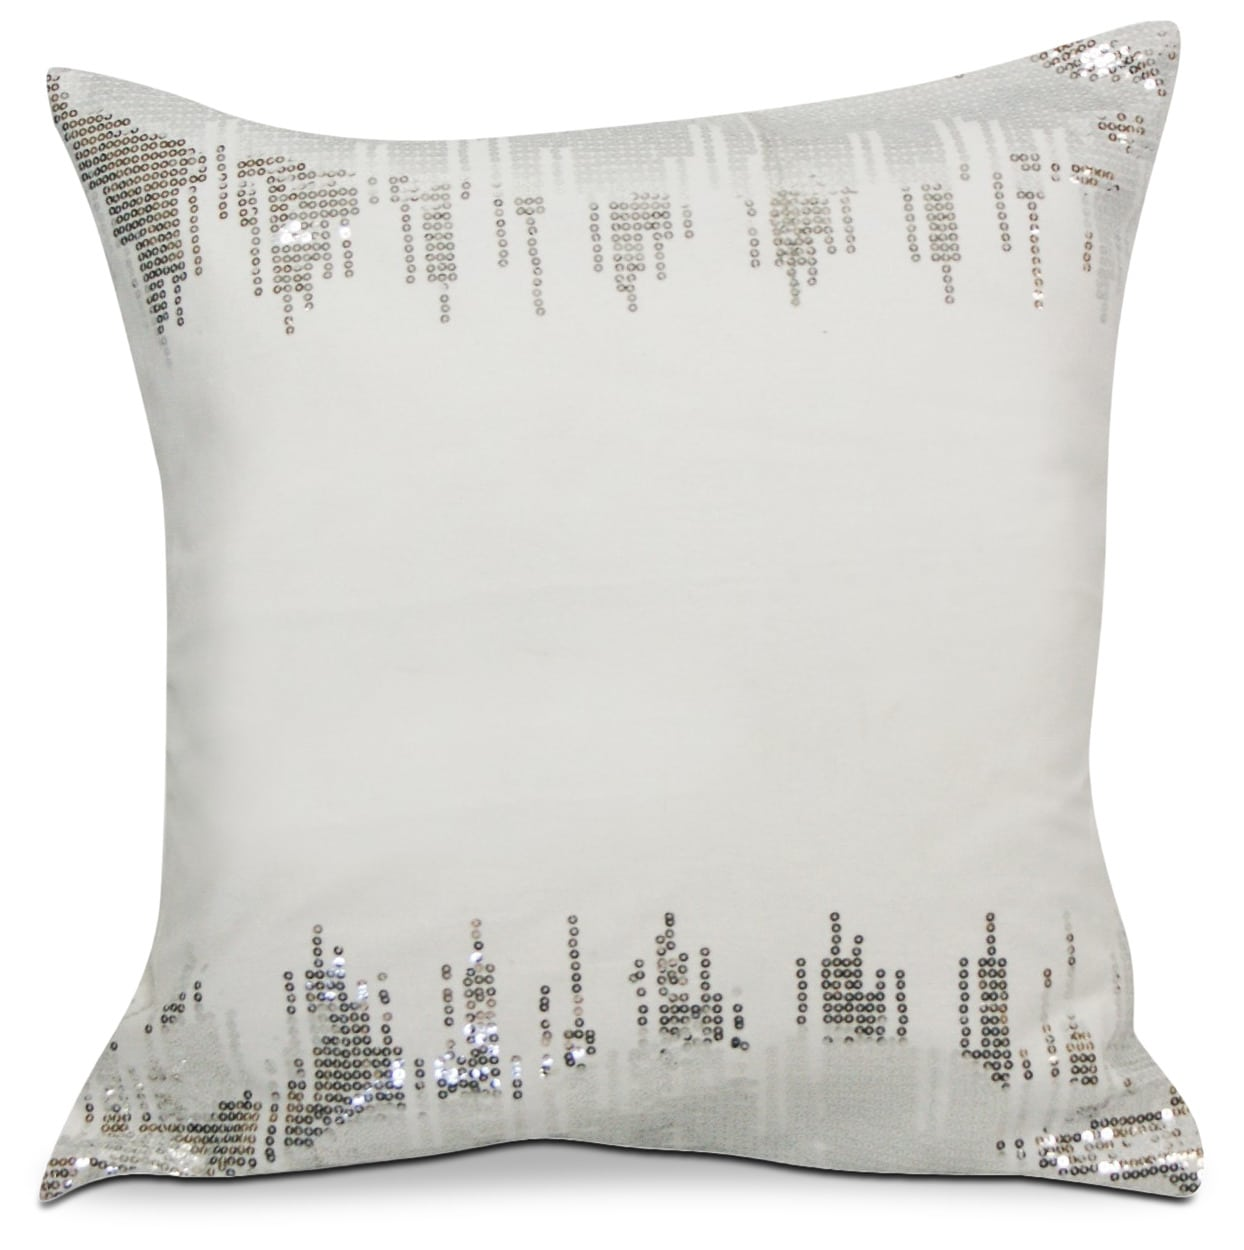 Glam Accent Pillow - White